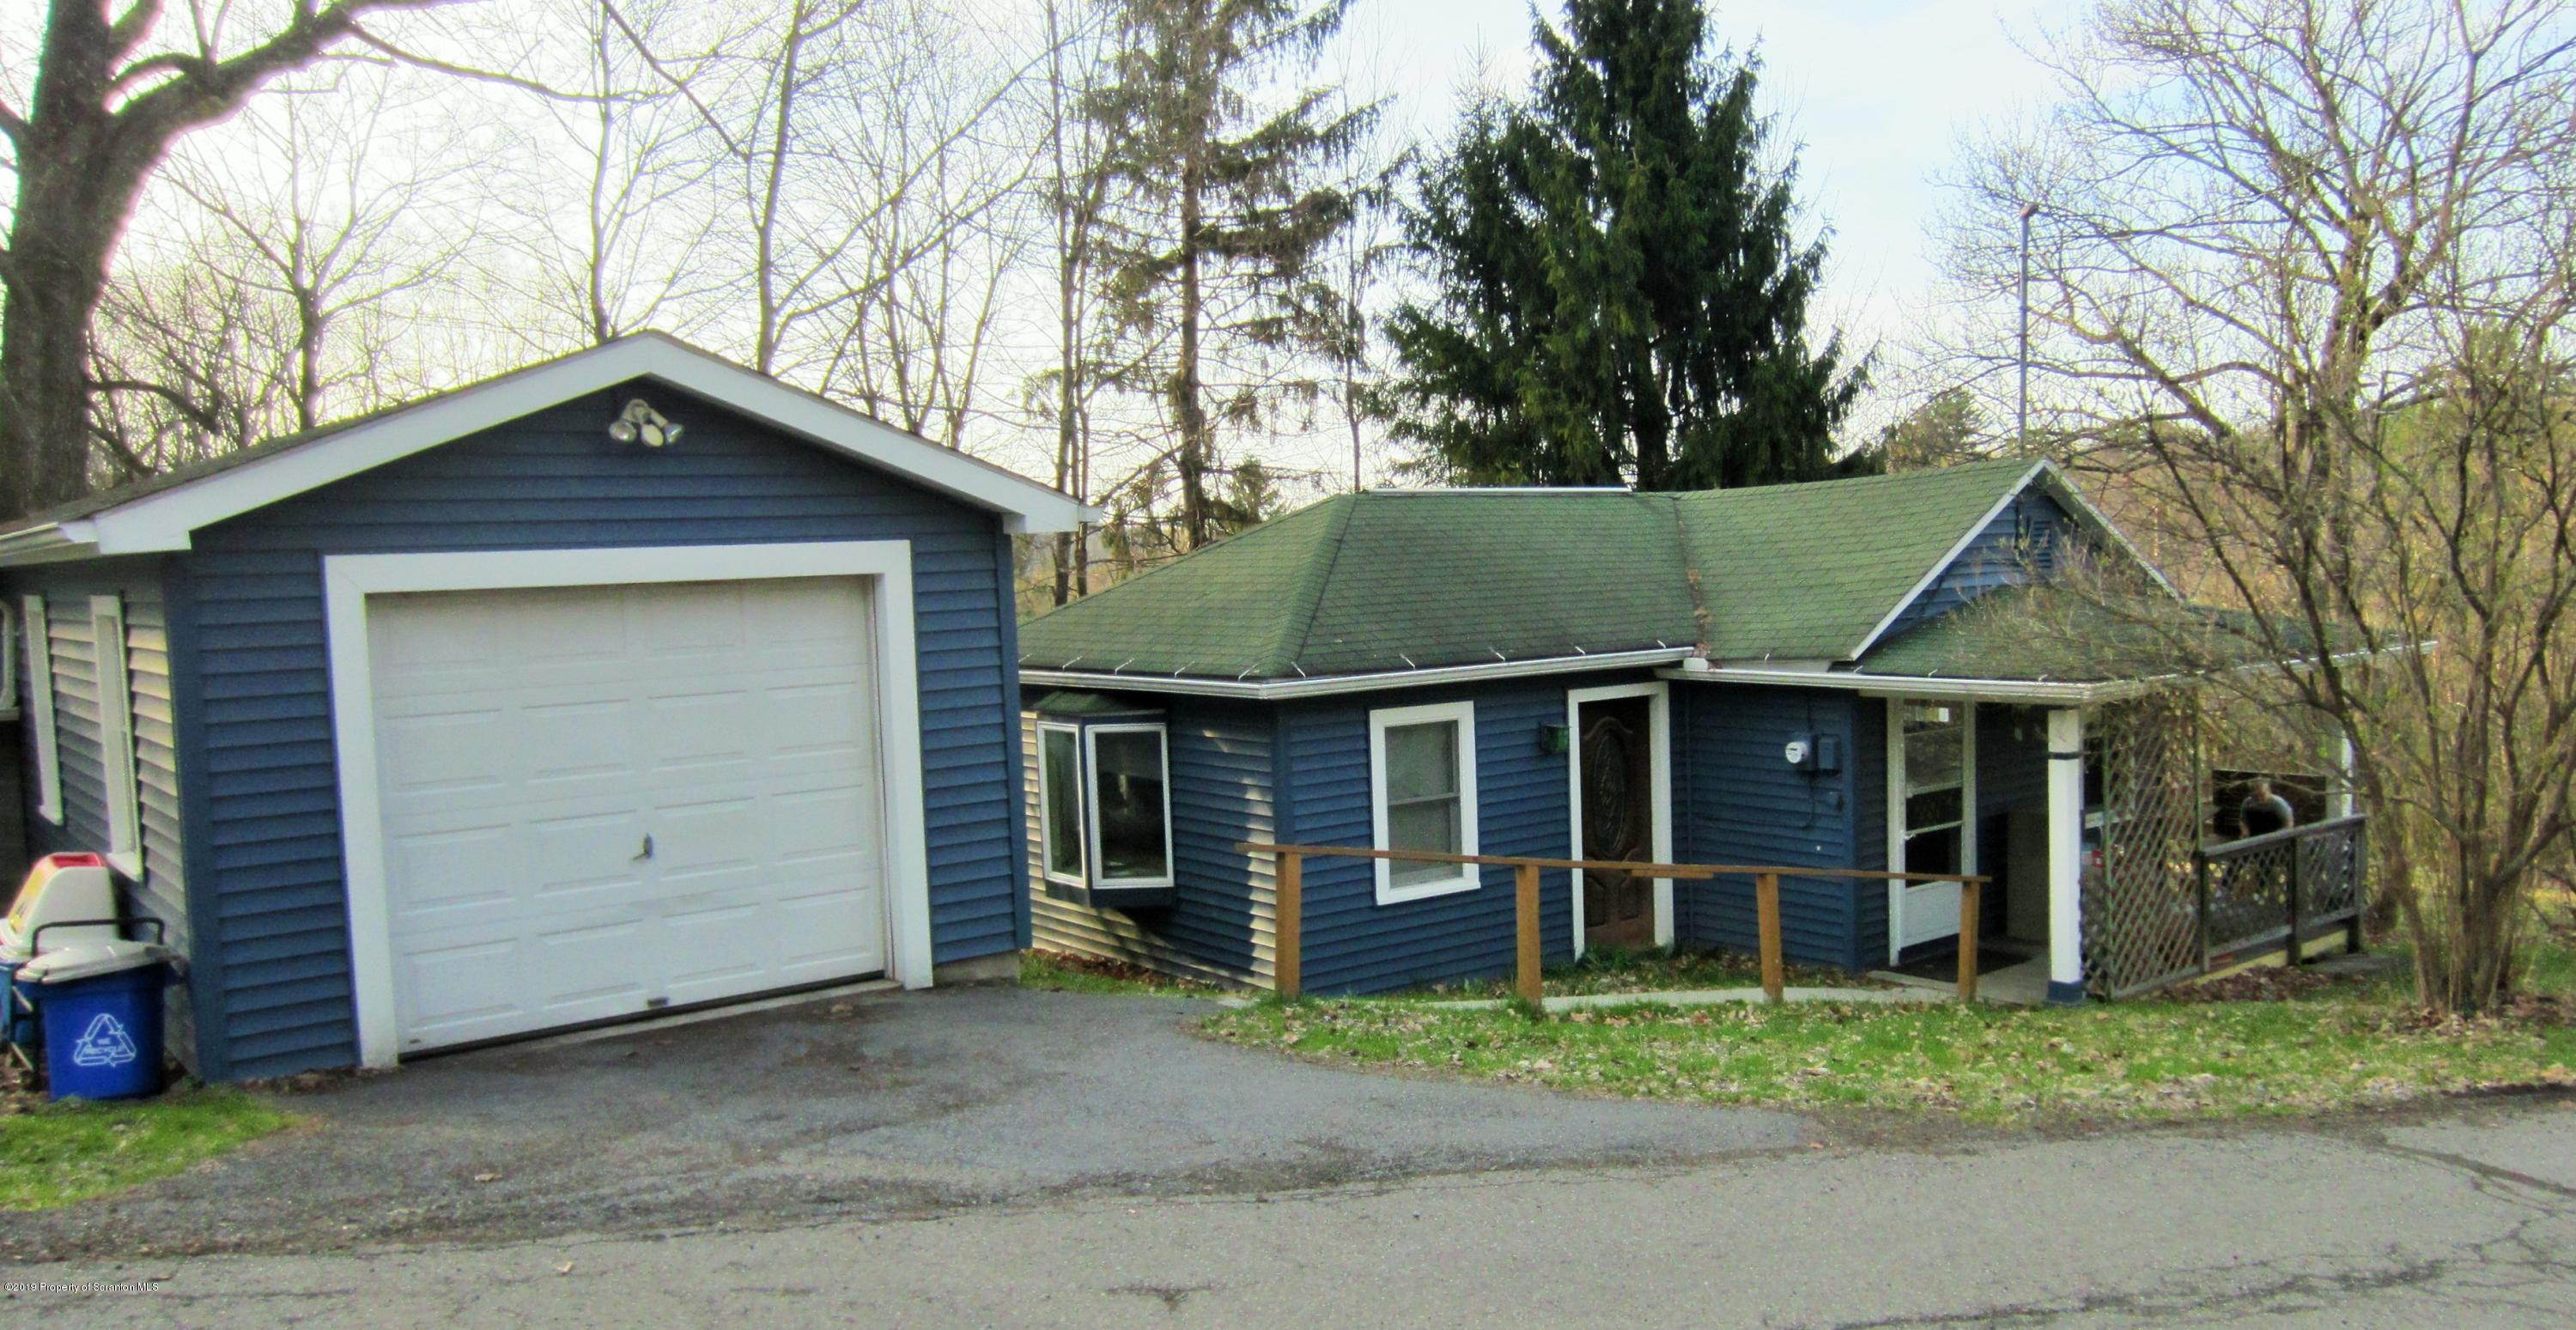 102 STELLE ST, Dalton, Pennsylvania 18414, 1 Bedroom Bedrooms, 4 Rooms Rooms,1 BathroomBathrooms,Single Family,For Sale,STELLE,19-1756